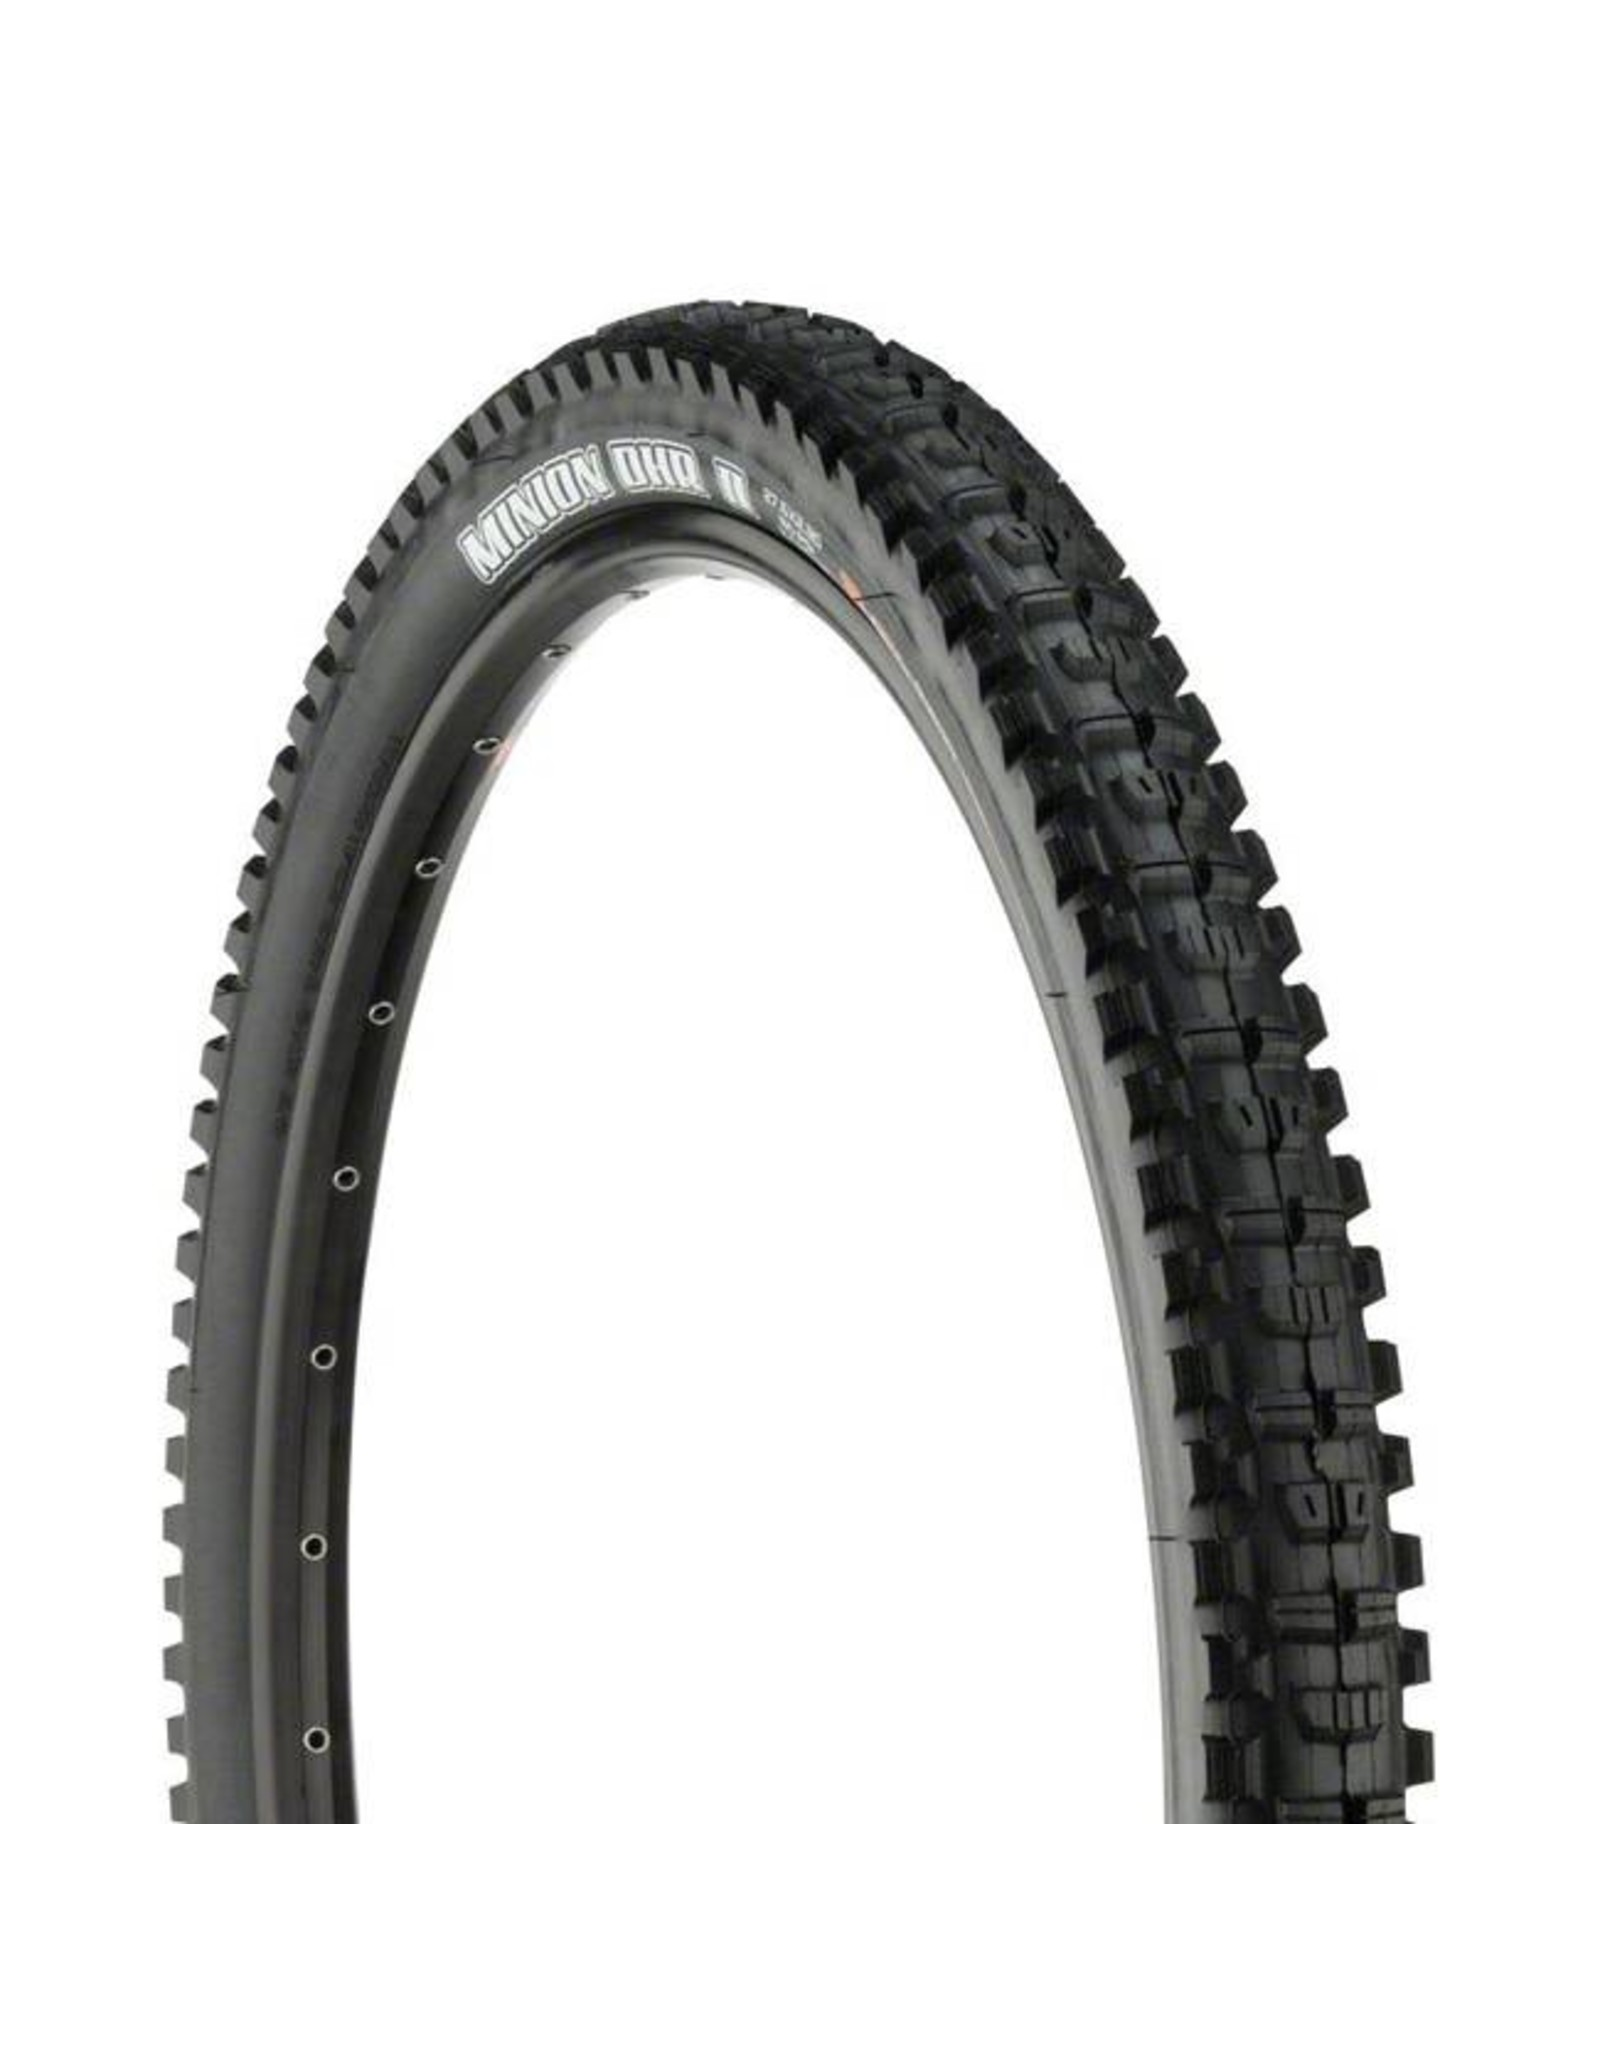 "Maxxis Maxxis Minion DHR II Tire: 27.5 x 2.30"", Folding, 120tpi, 3C, Double Down, Tubeless Ready, Black"